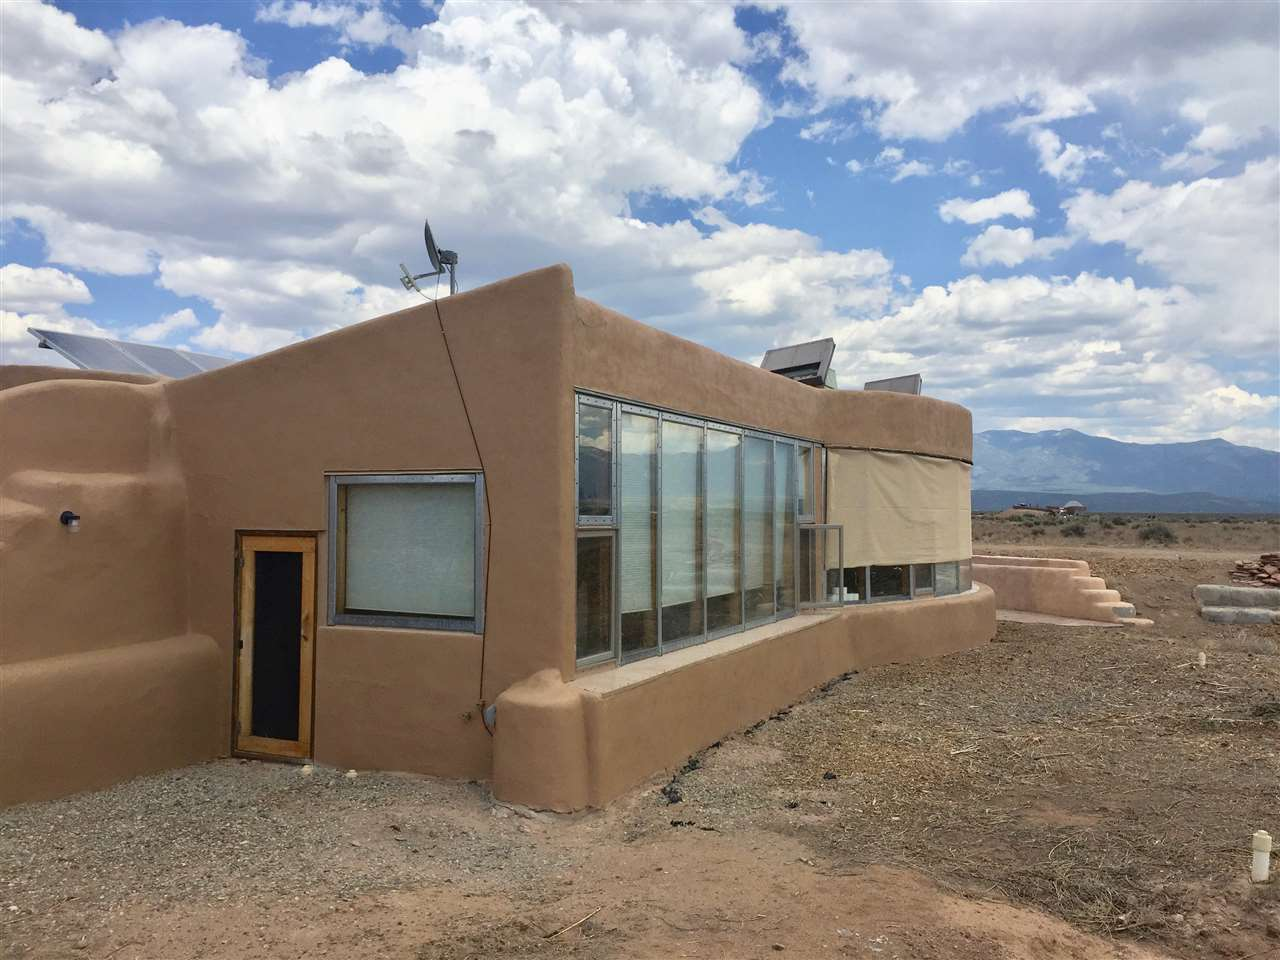 Greater World Community, Taos, NM 87571